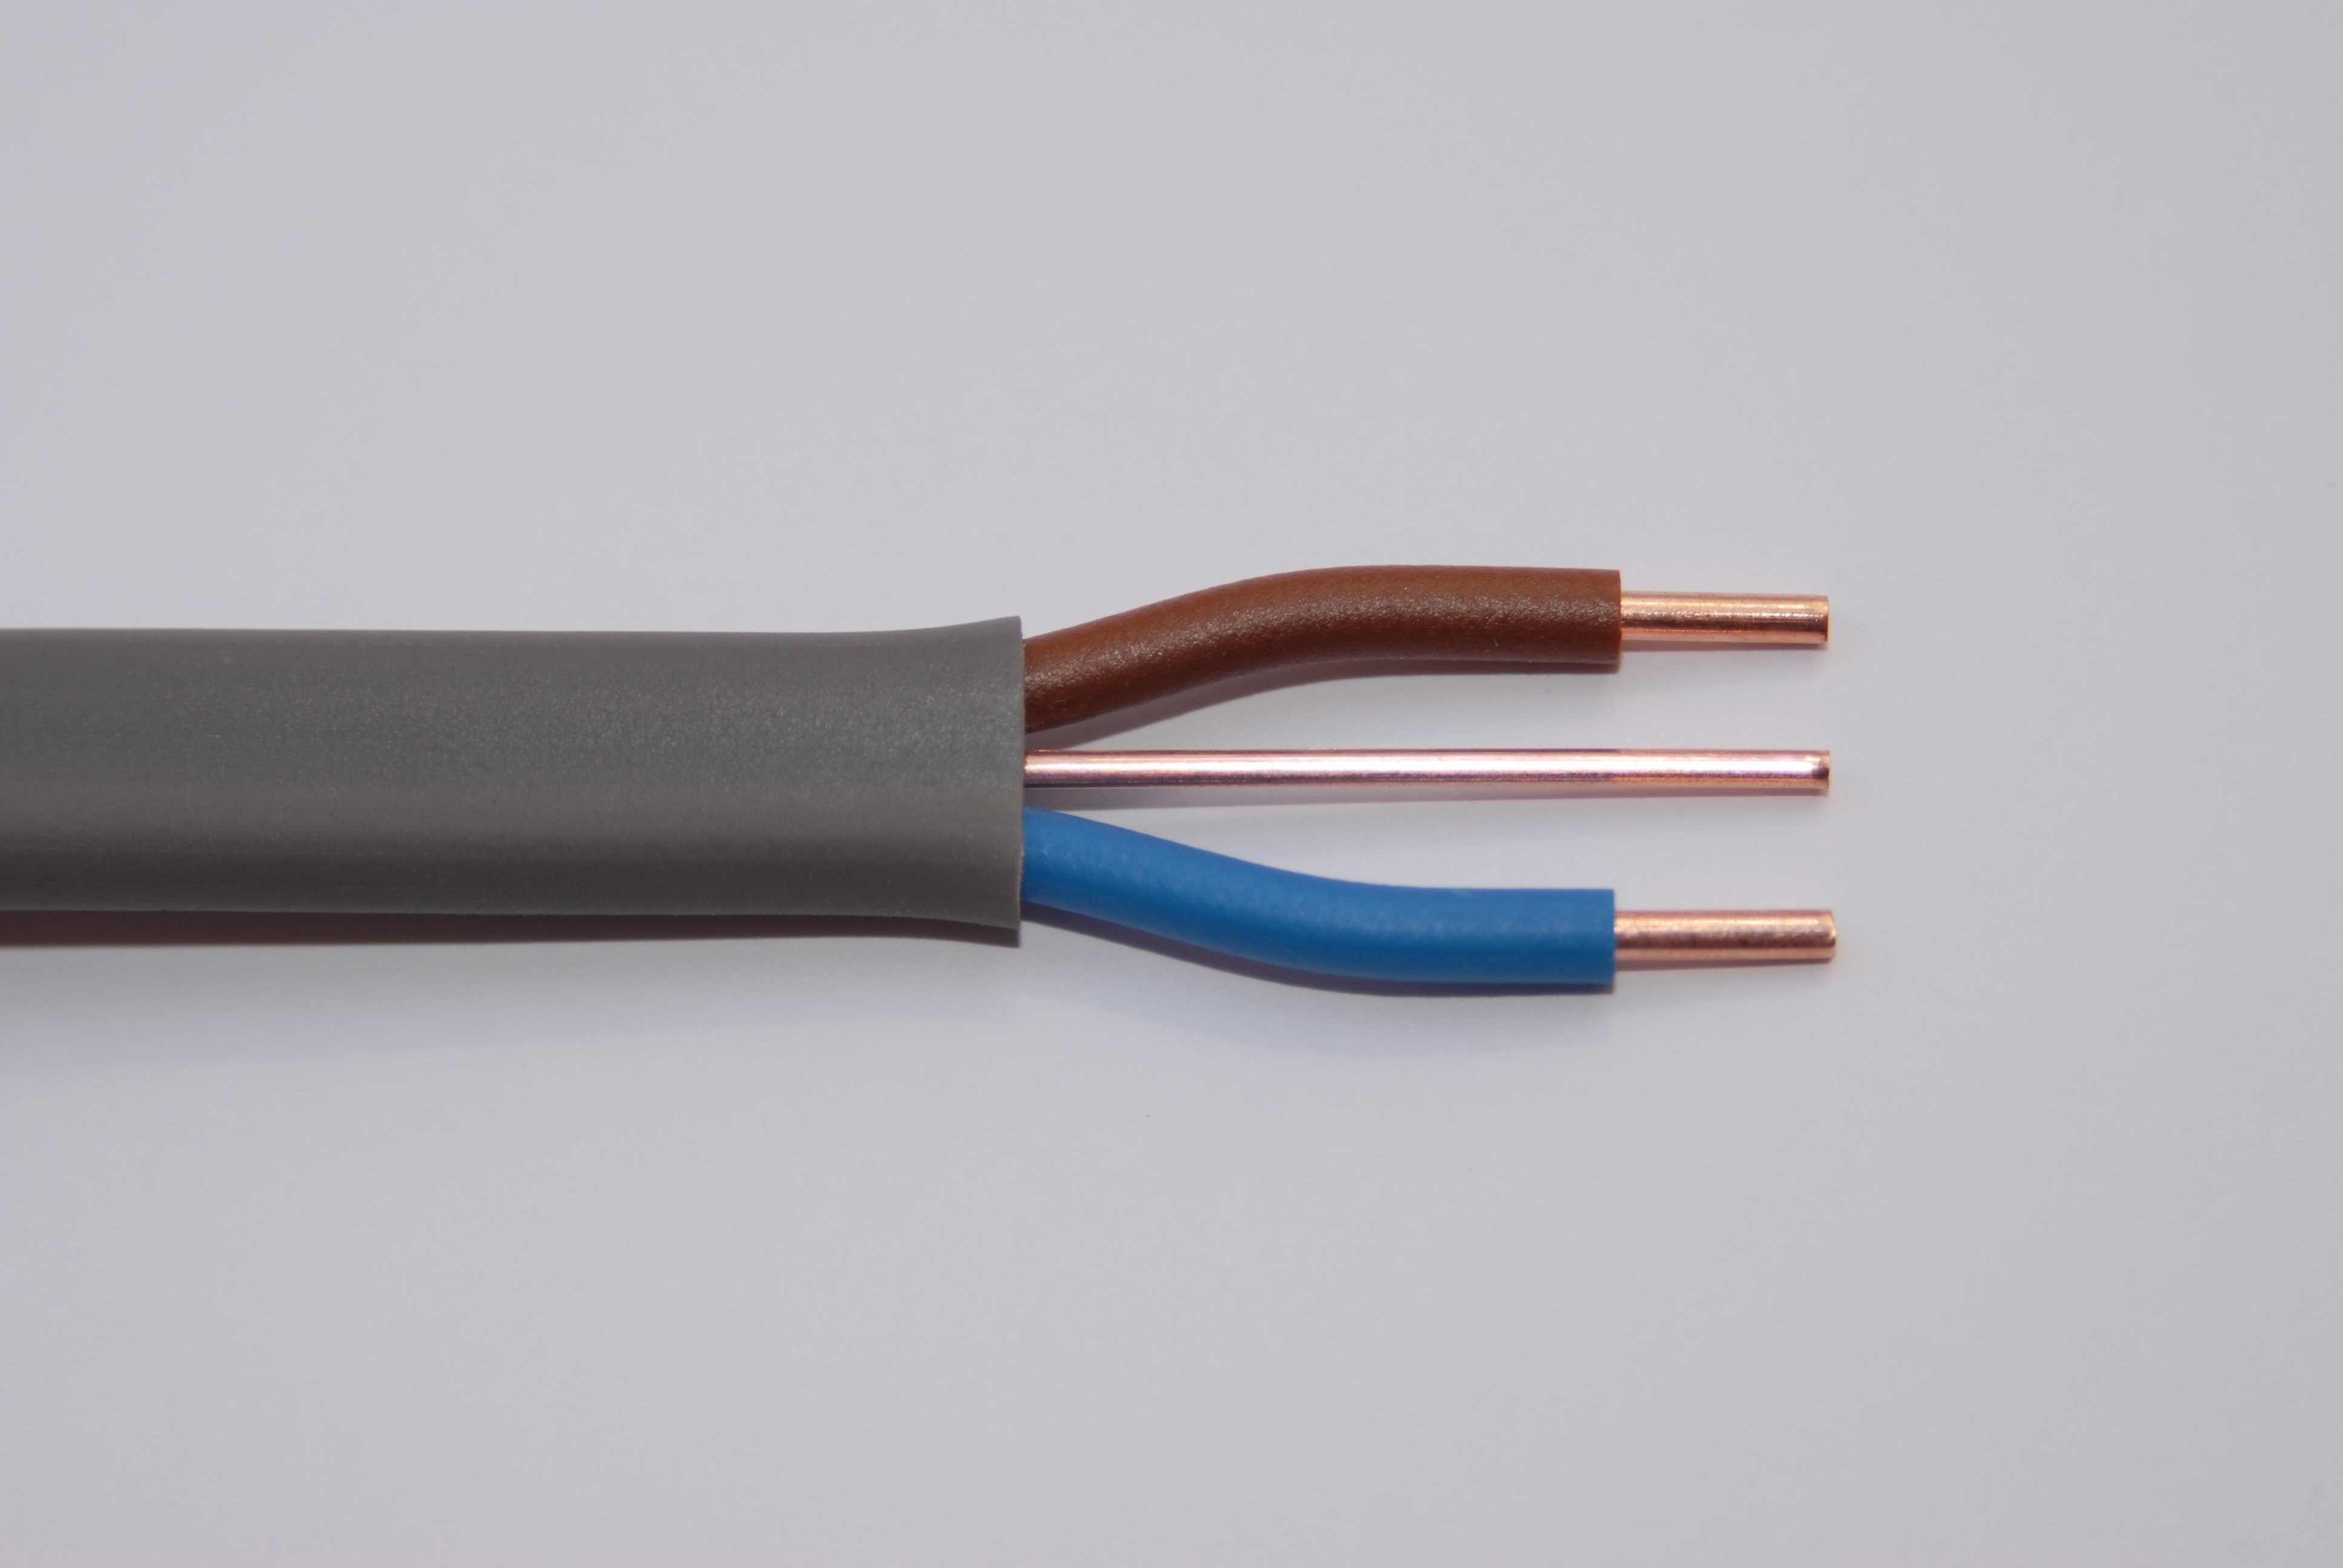 PVC vs XLPE for insulating cable: What's the difference?